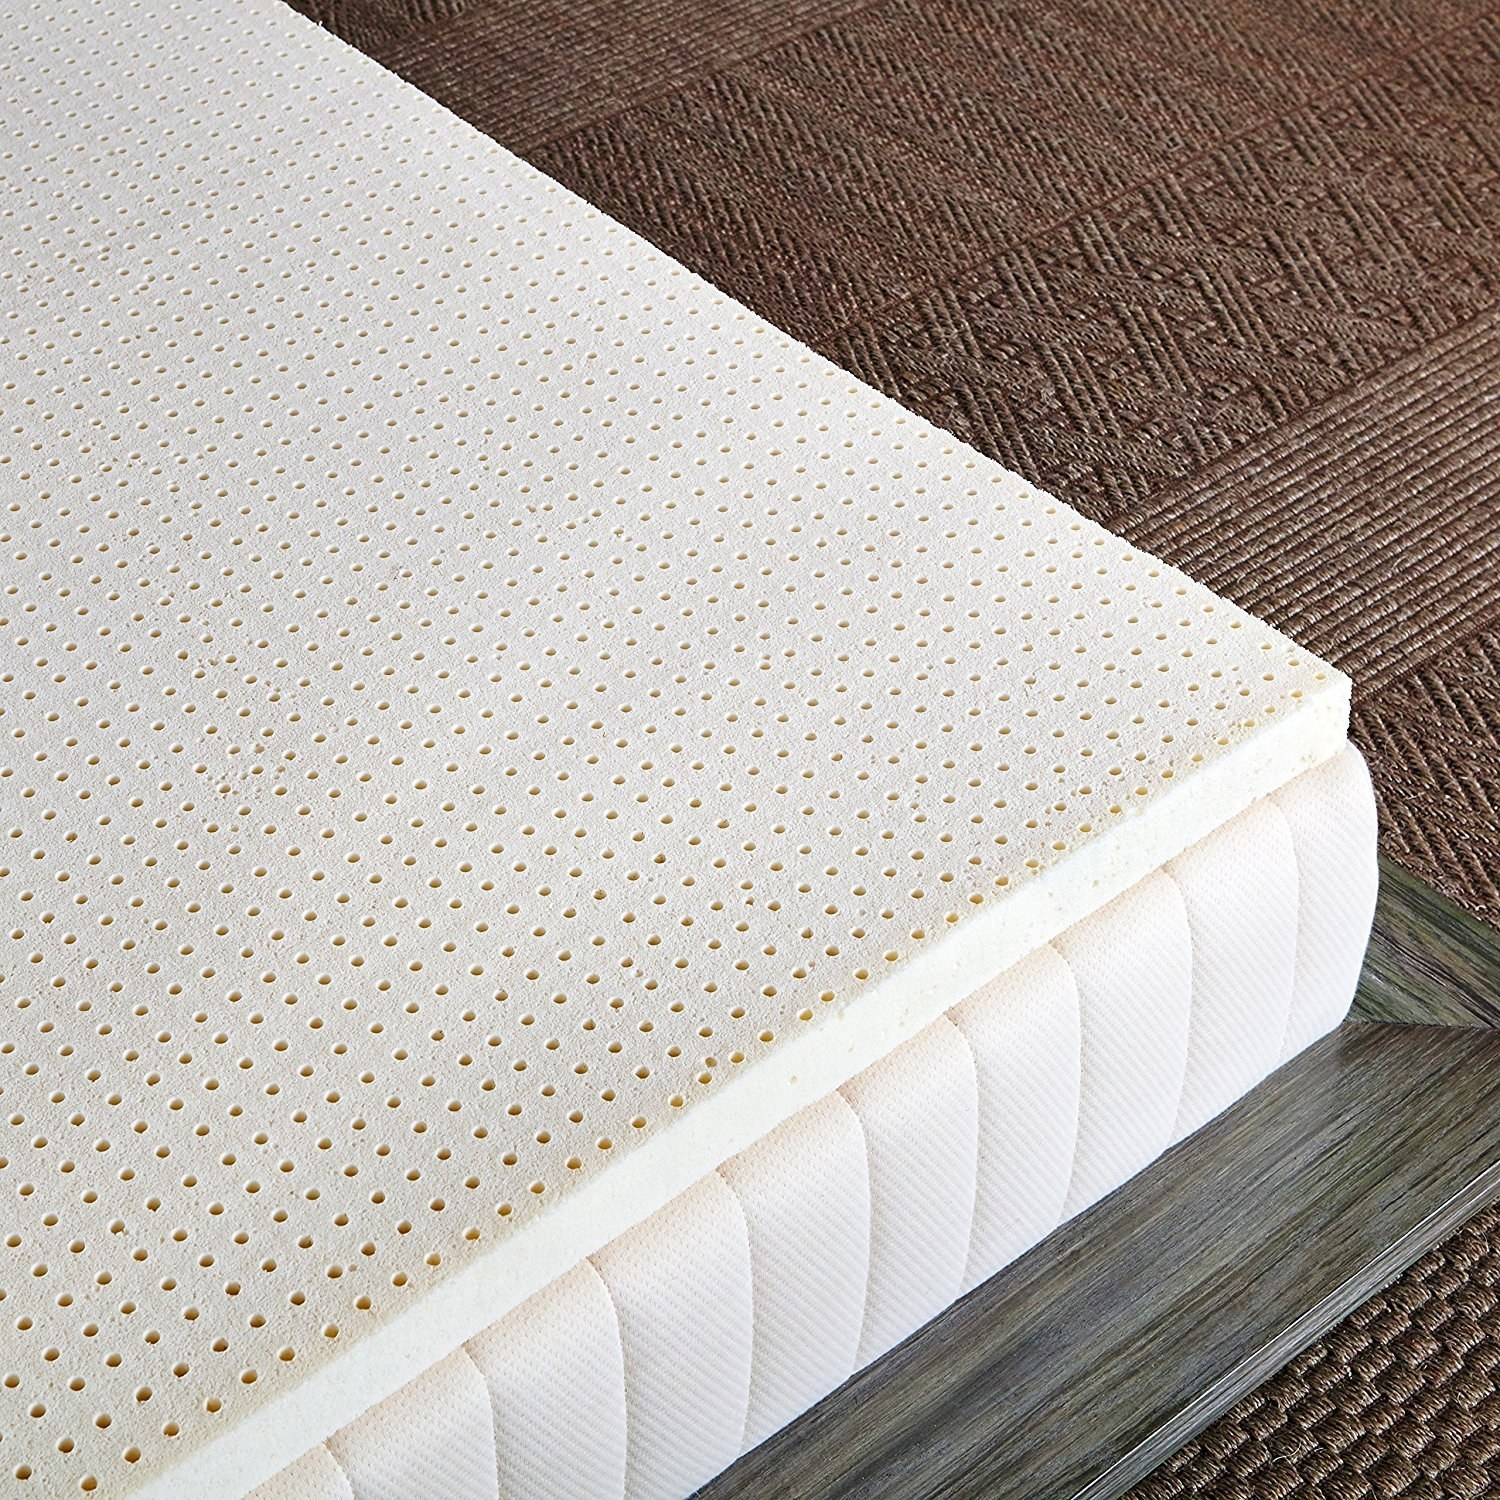 The topper on a mattress — it's dotted with a small grid of holes for airflow